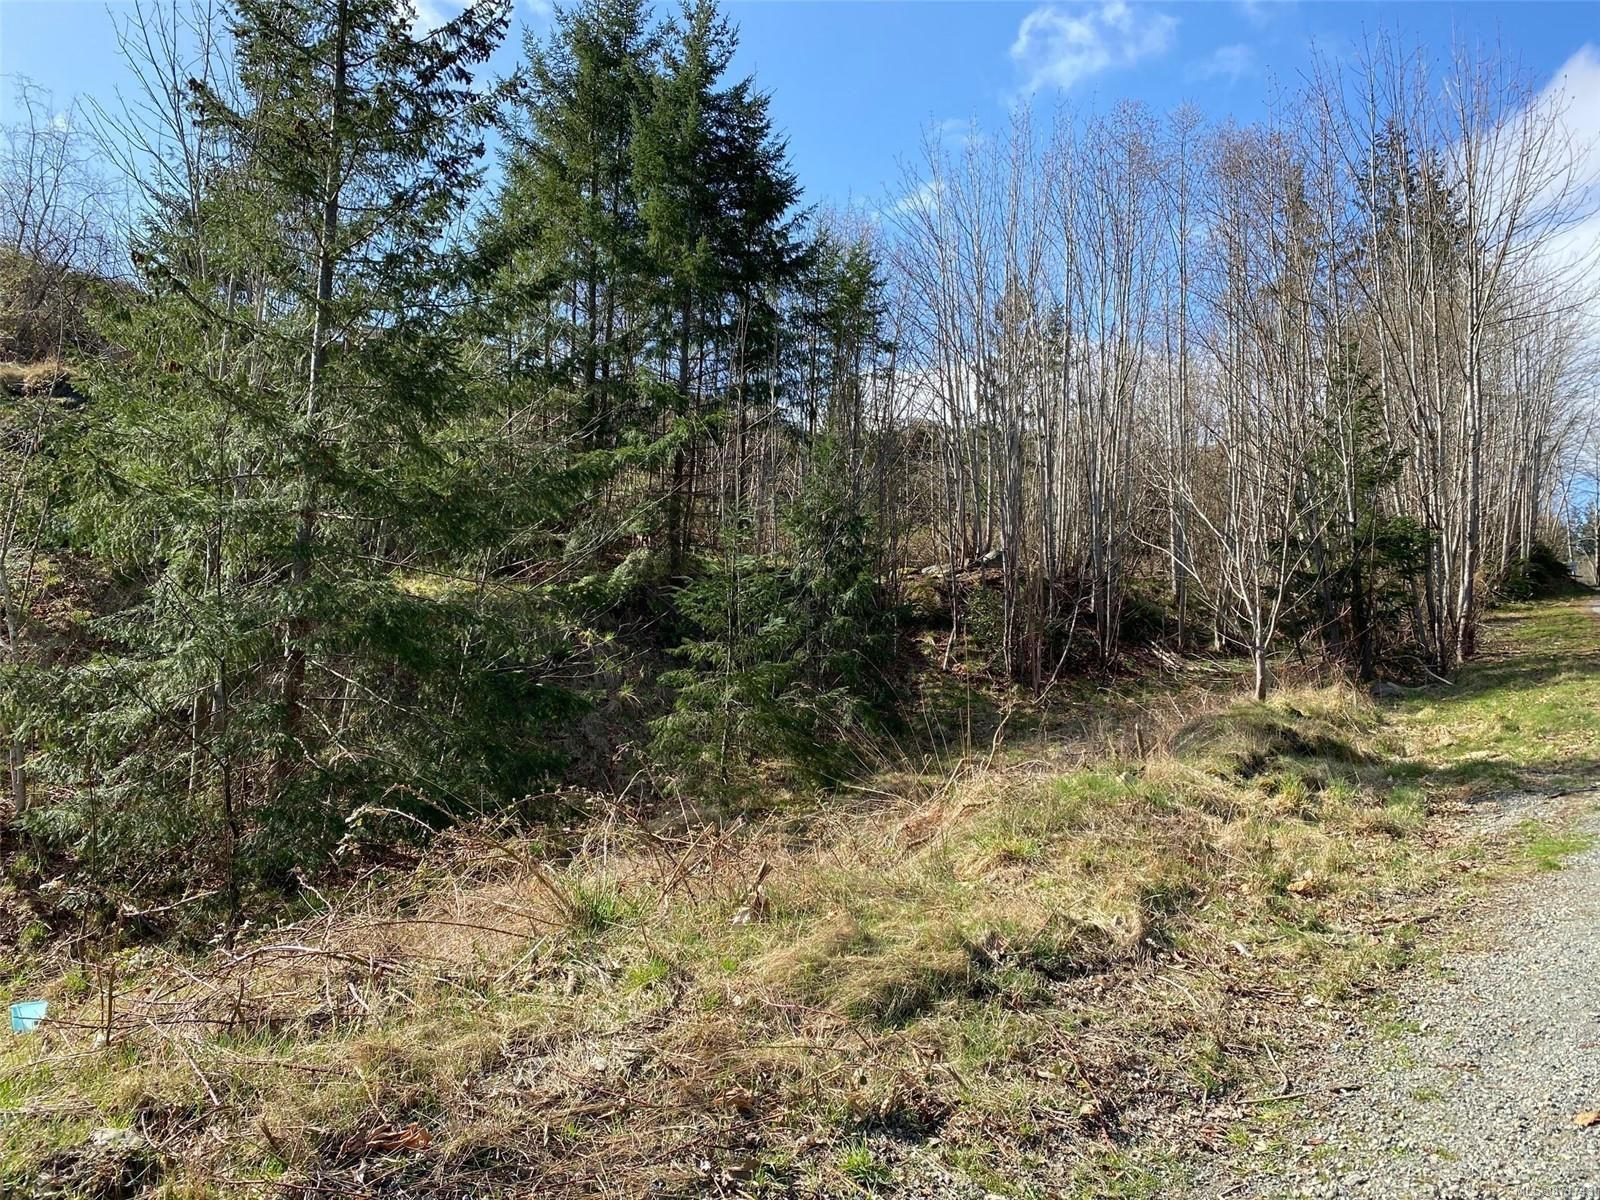 Main Photo: LOT 15 Spruce St in : CR Campbell River Central Land for sale (Campbell River)  : MLS®# 871743